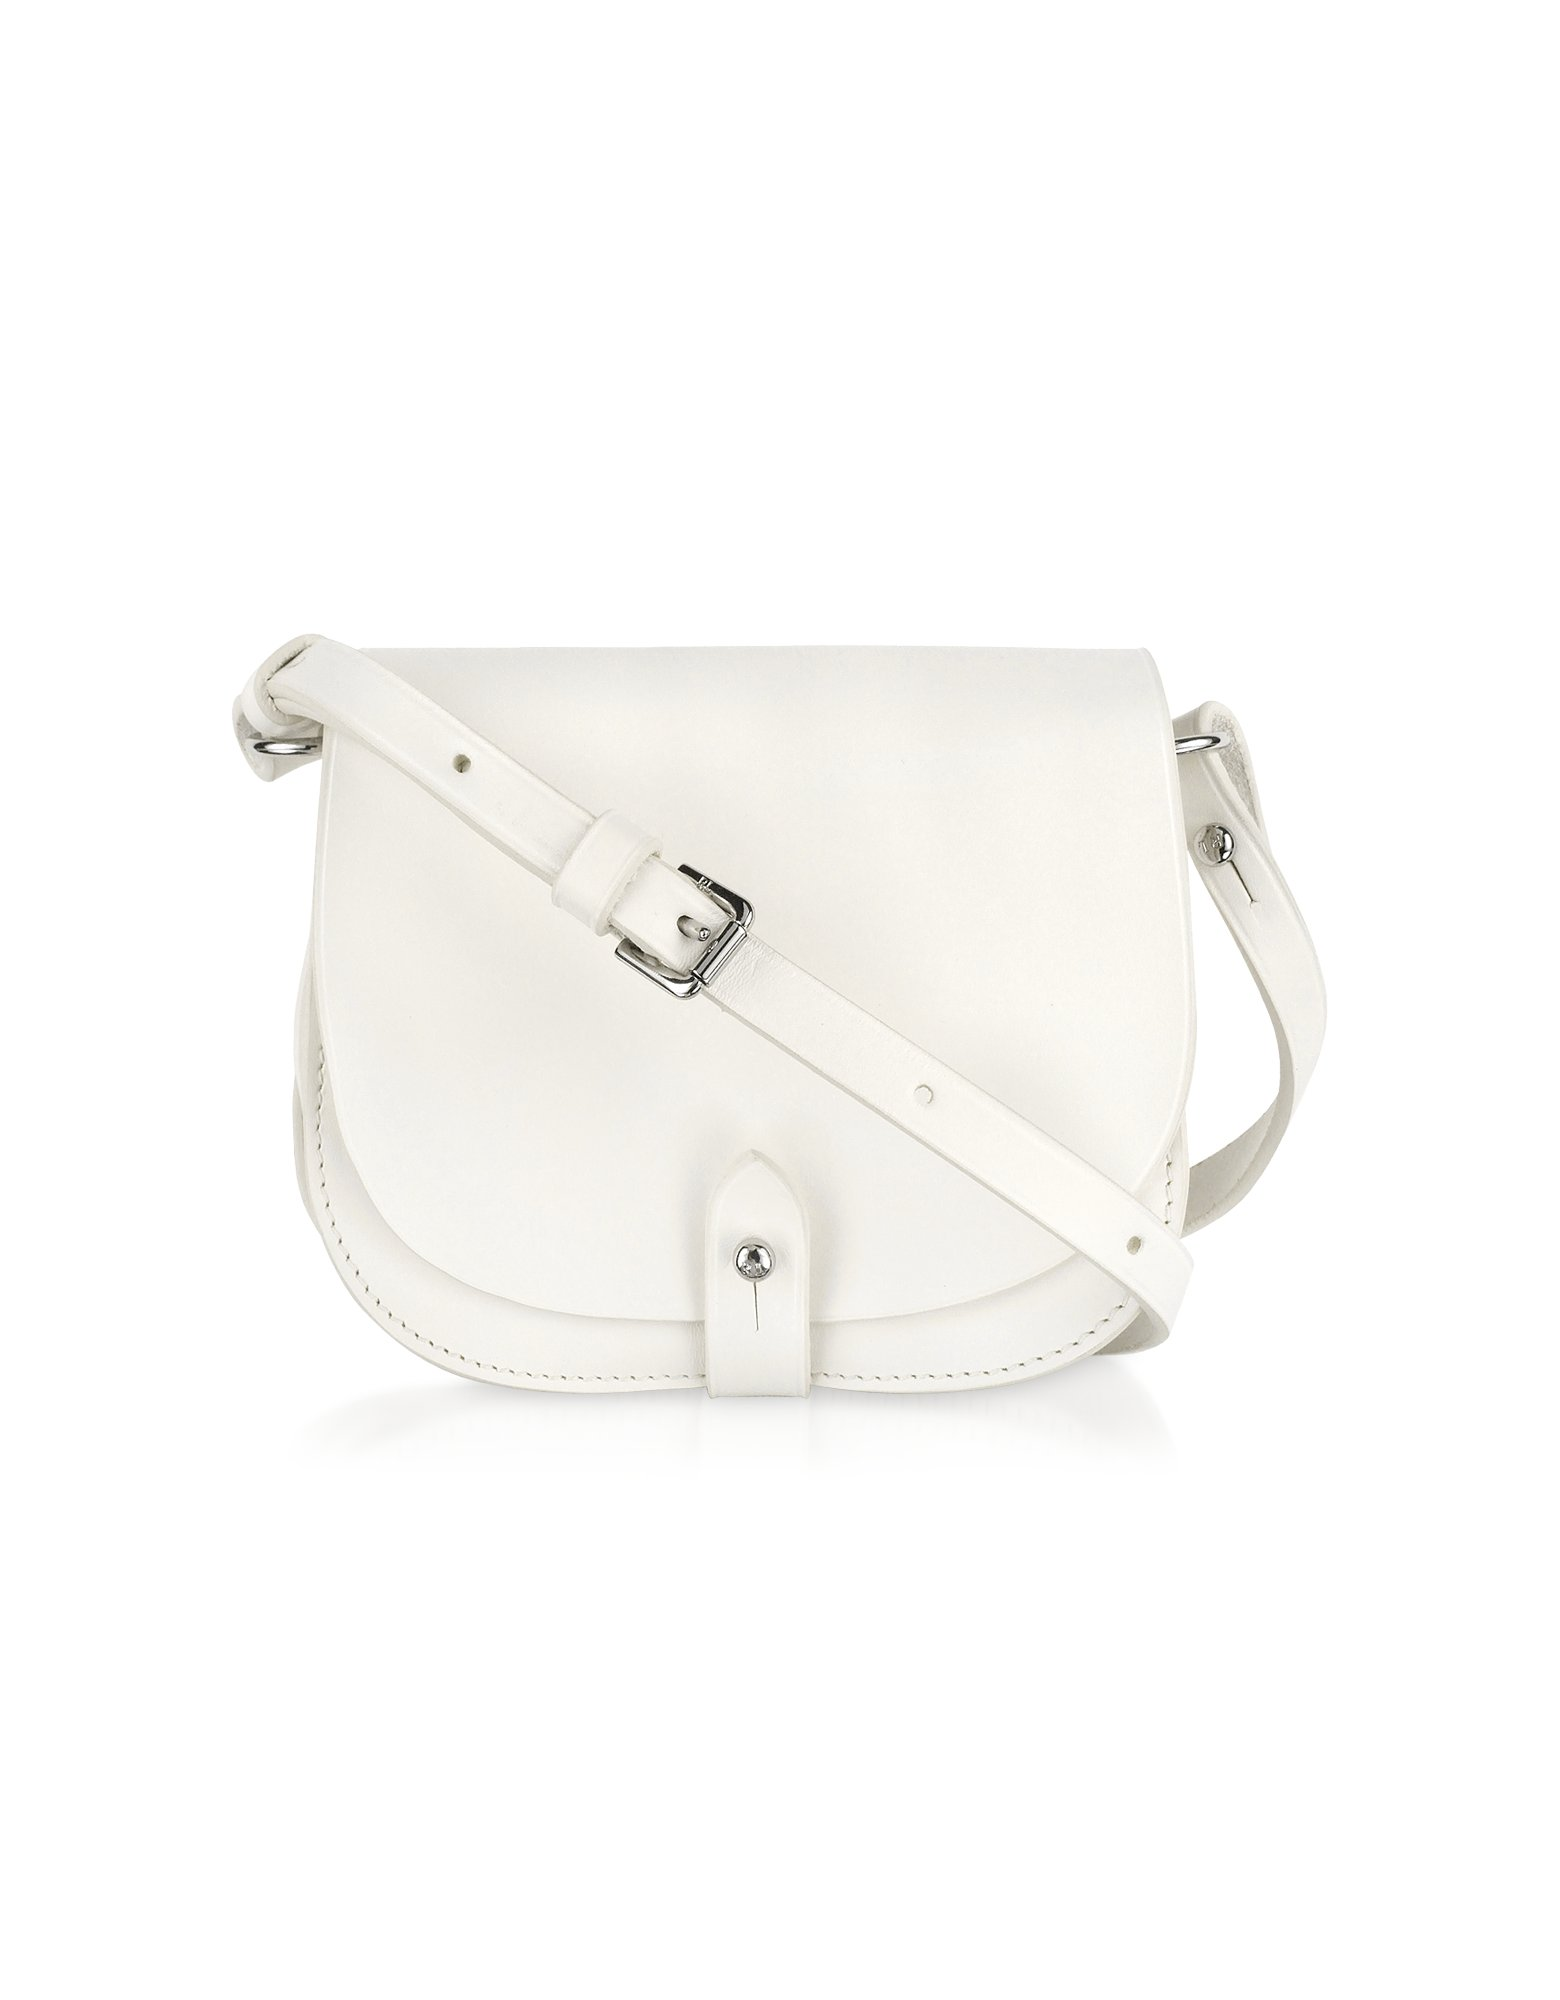 Ralph lauren collection Small Saddle Shoulder Bag in White | Lyst